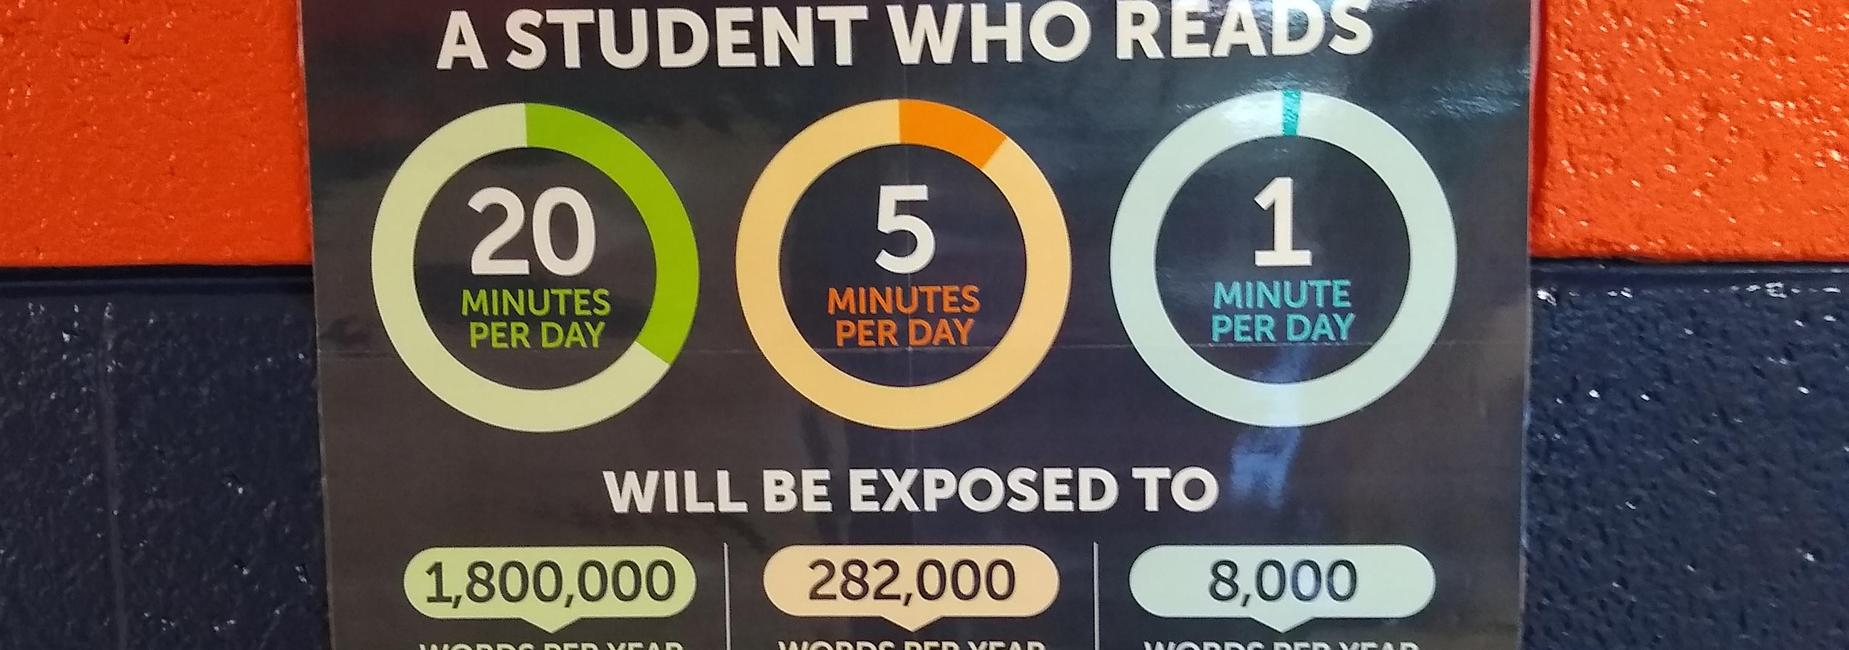 students who read